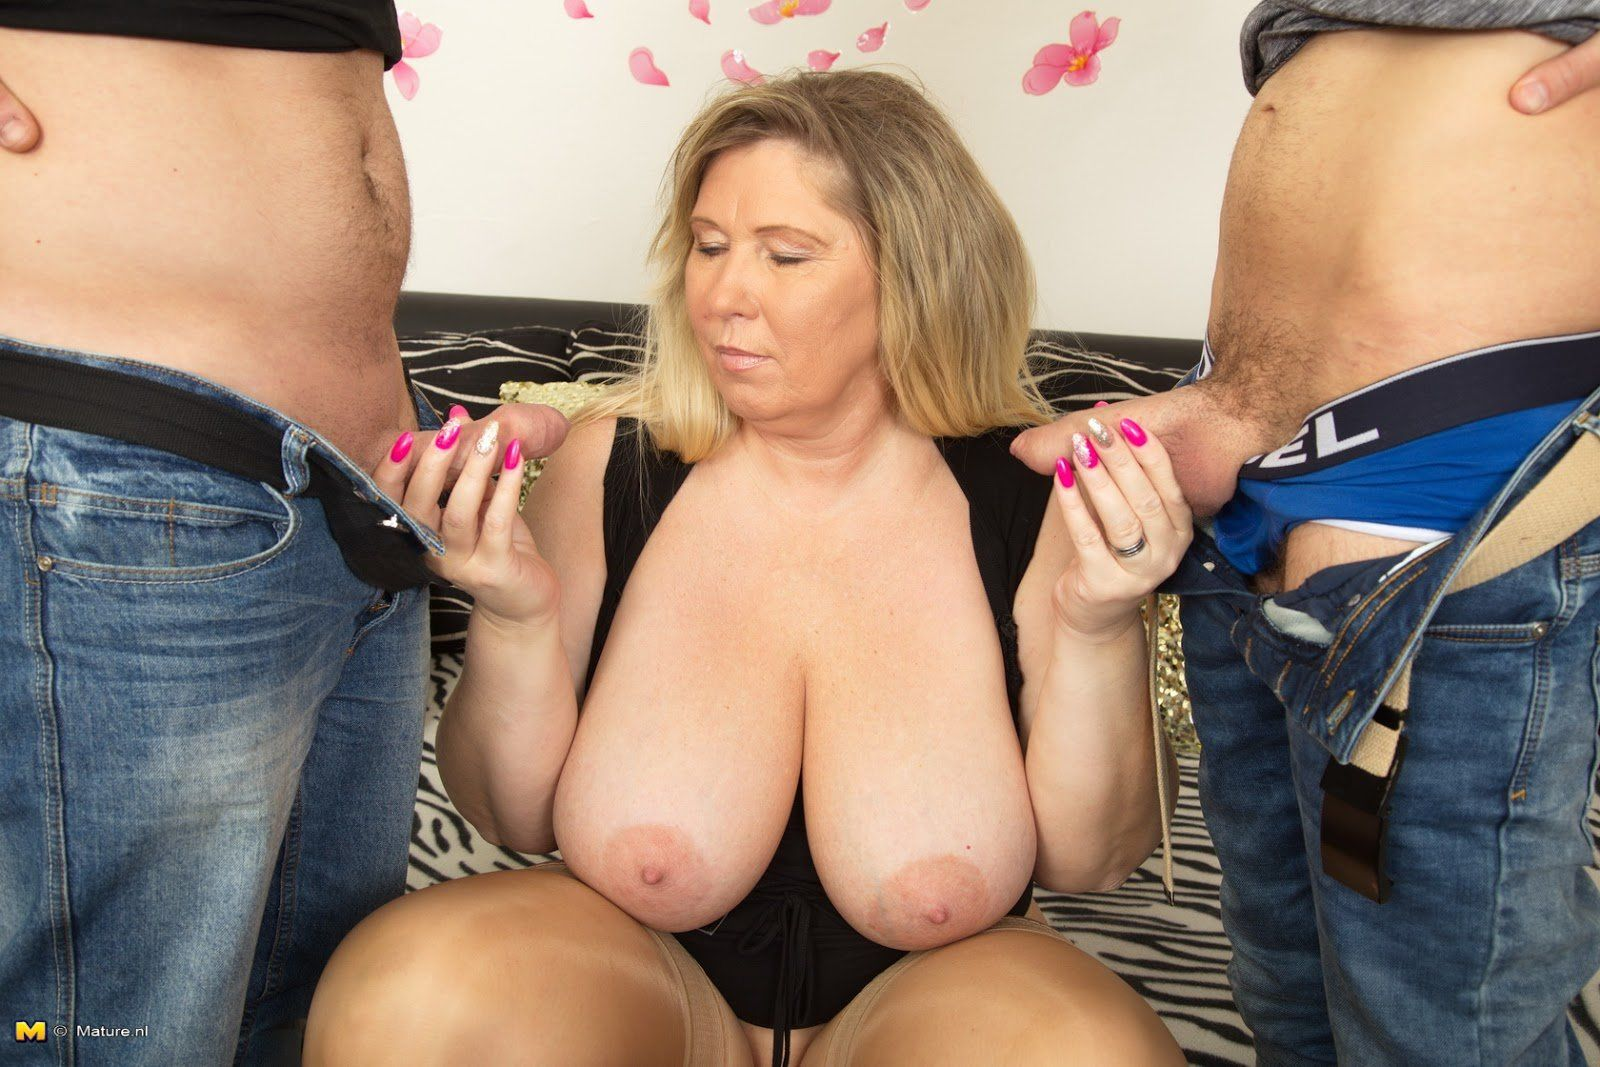 Free mature hardcore photos remarkable